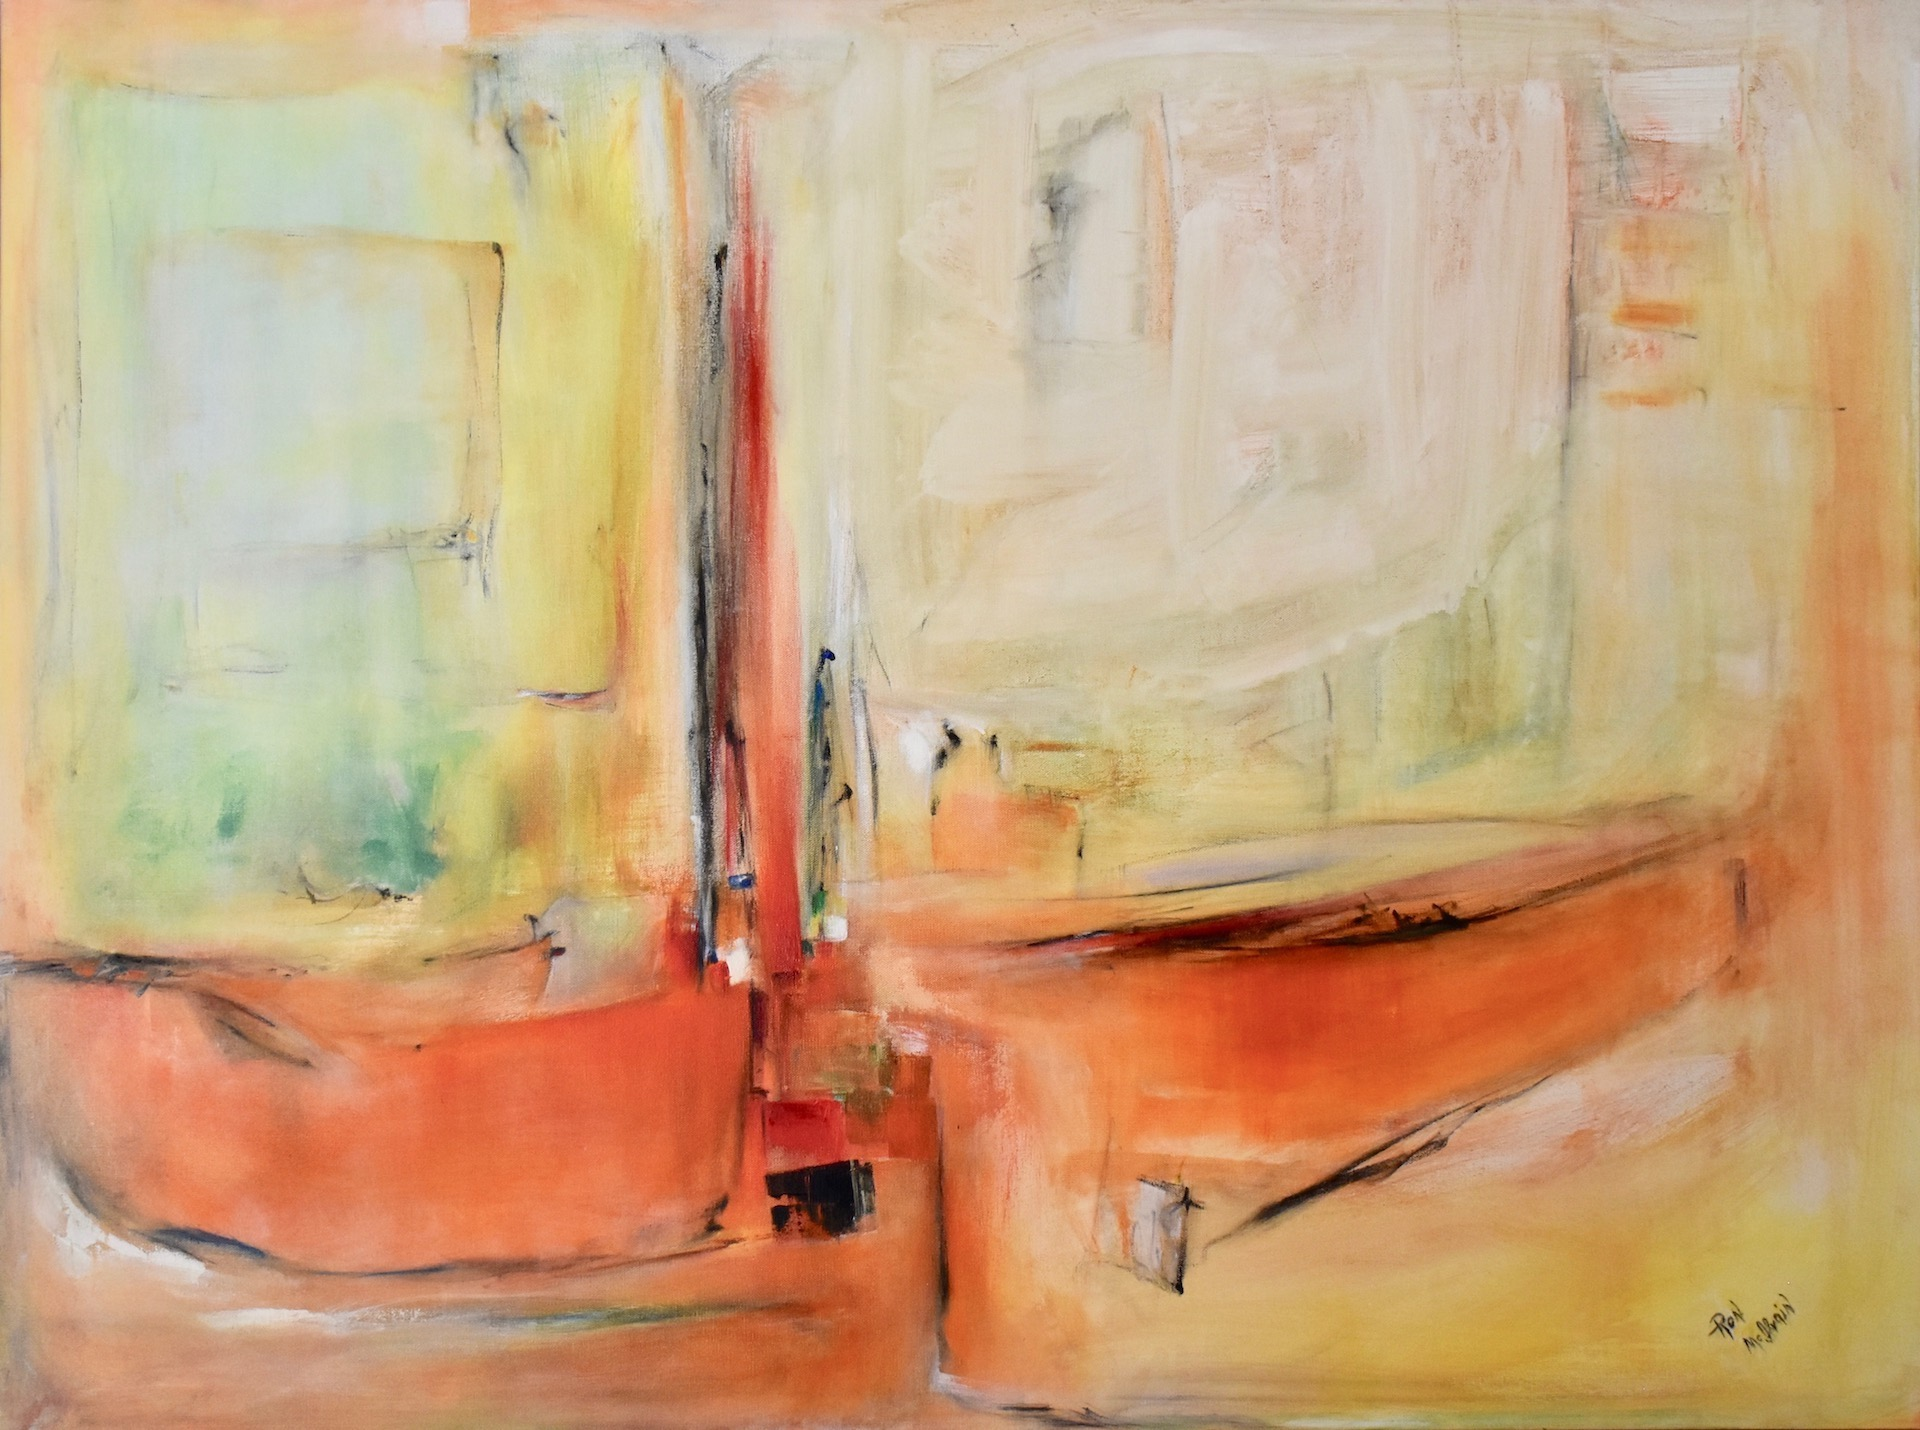 """Ron McIlvain, """"Boats at the Dock,"""" 2018, acrylic on canvas, 36"""" x 48"""""""